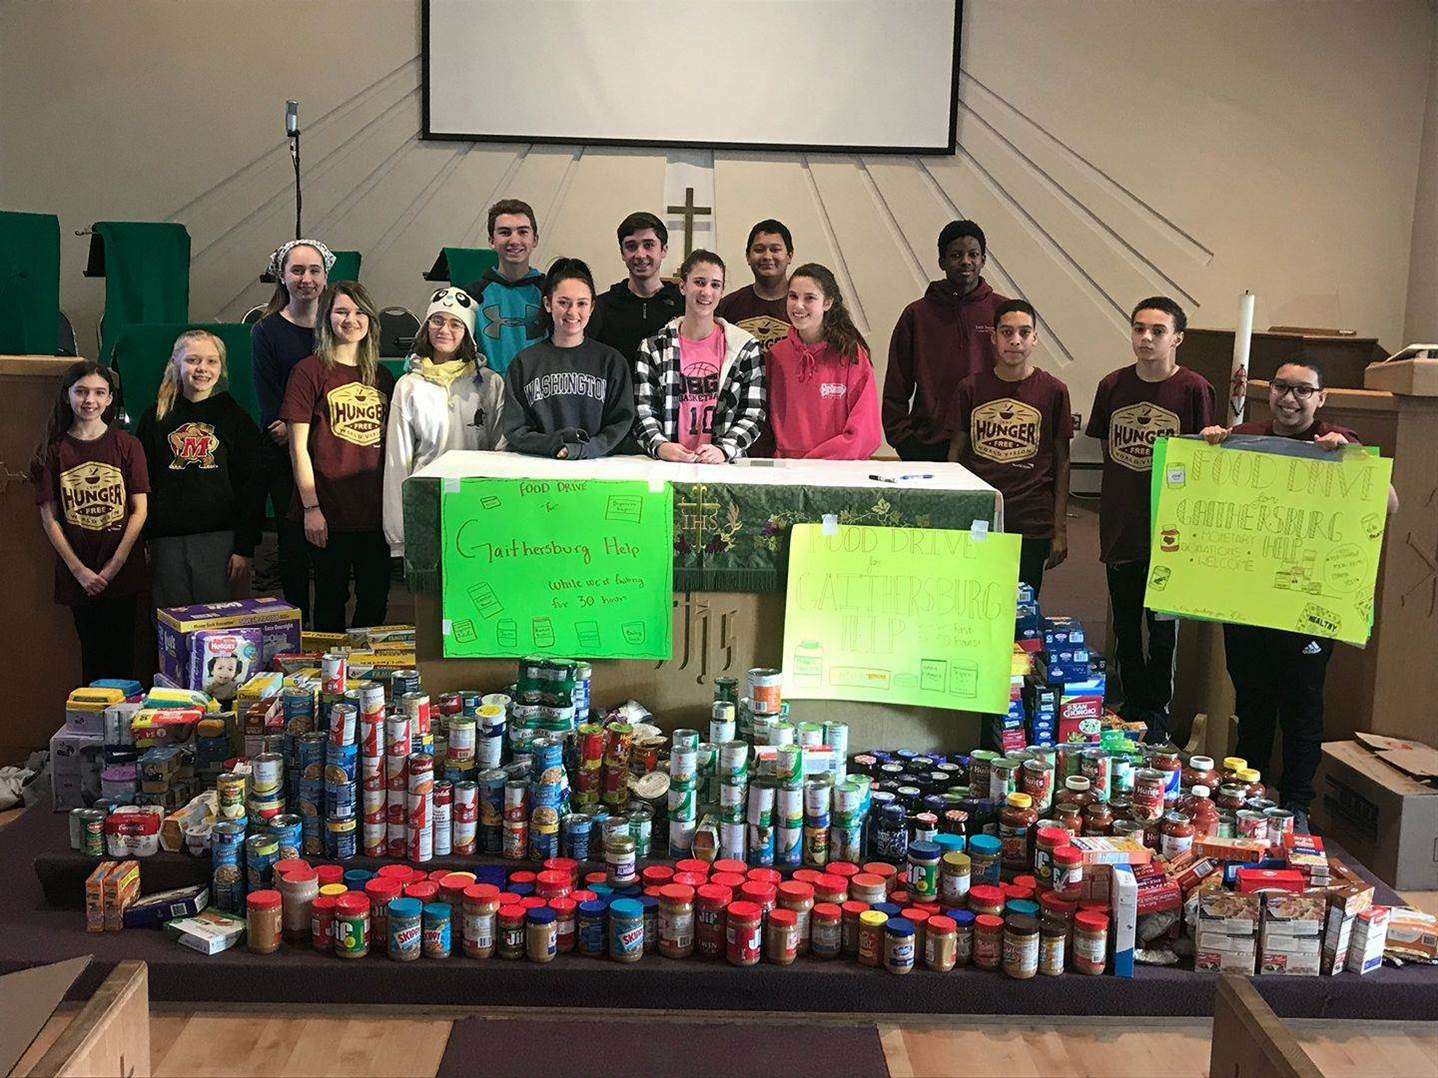 Youth collect canned goods for Gaithersburg HELP during 30 Hour Famine